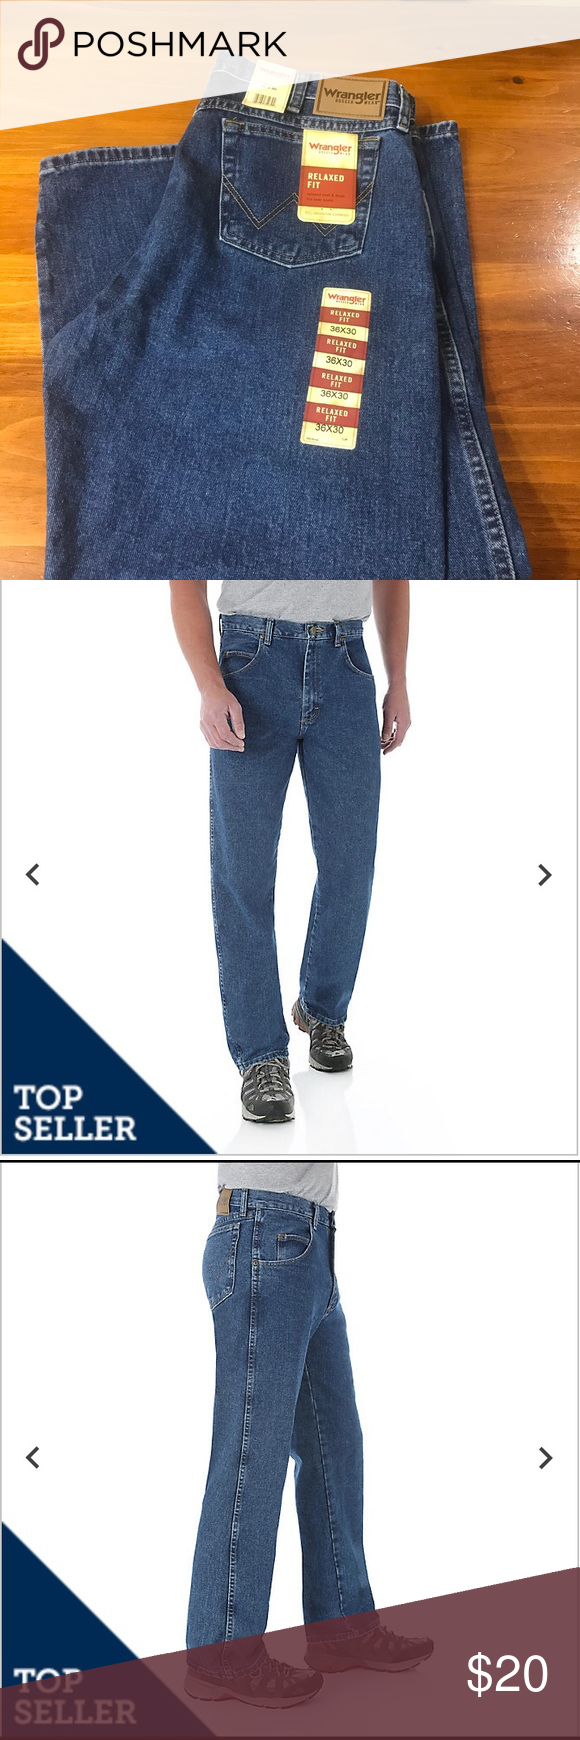 Wrangler Rugged Wear Relaxed Fit Jeans In 2020 Relaxed Fit Jeans Jeans Fit Clothes Design